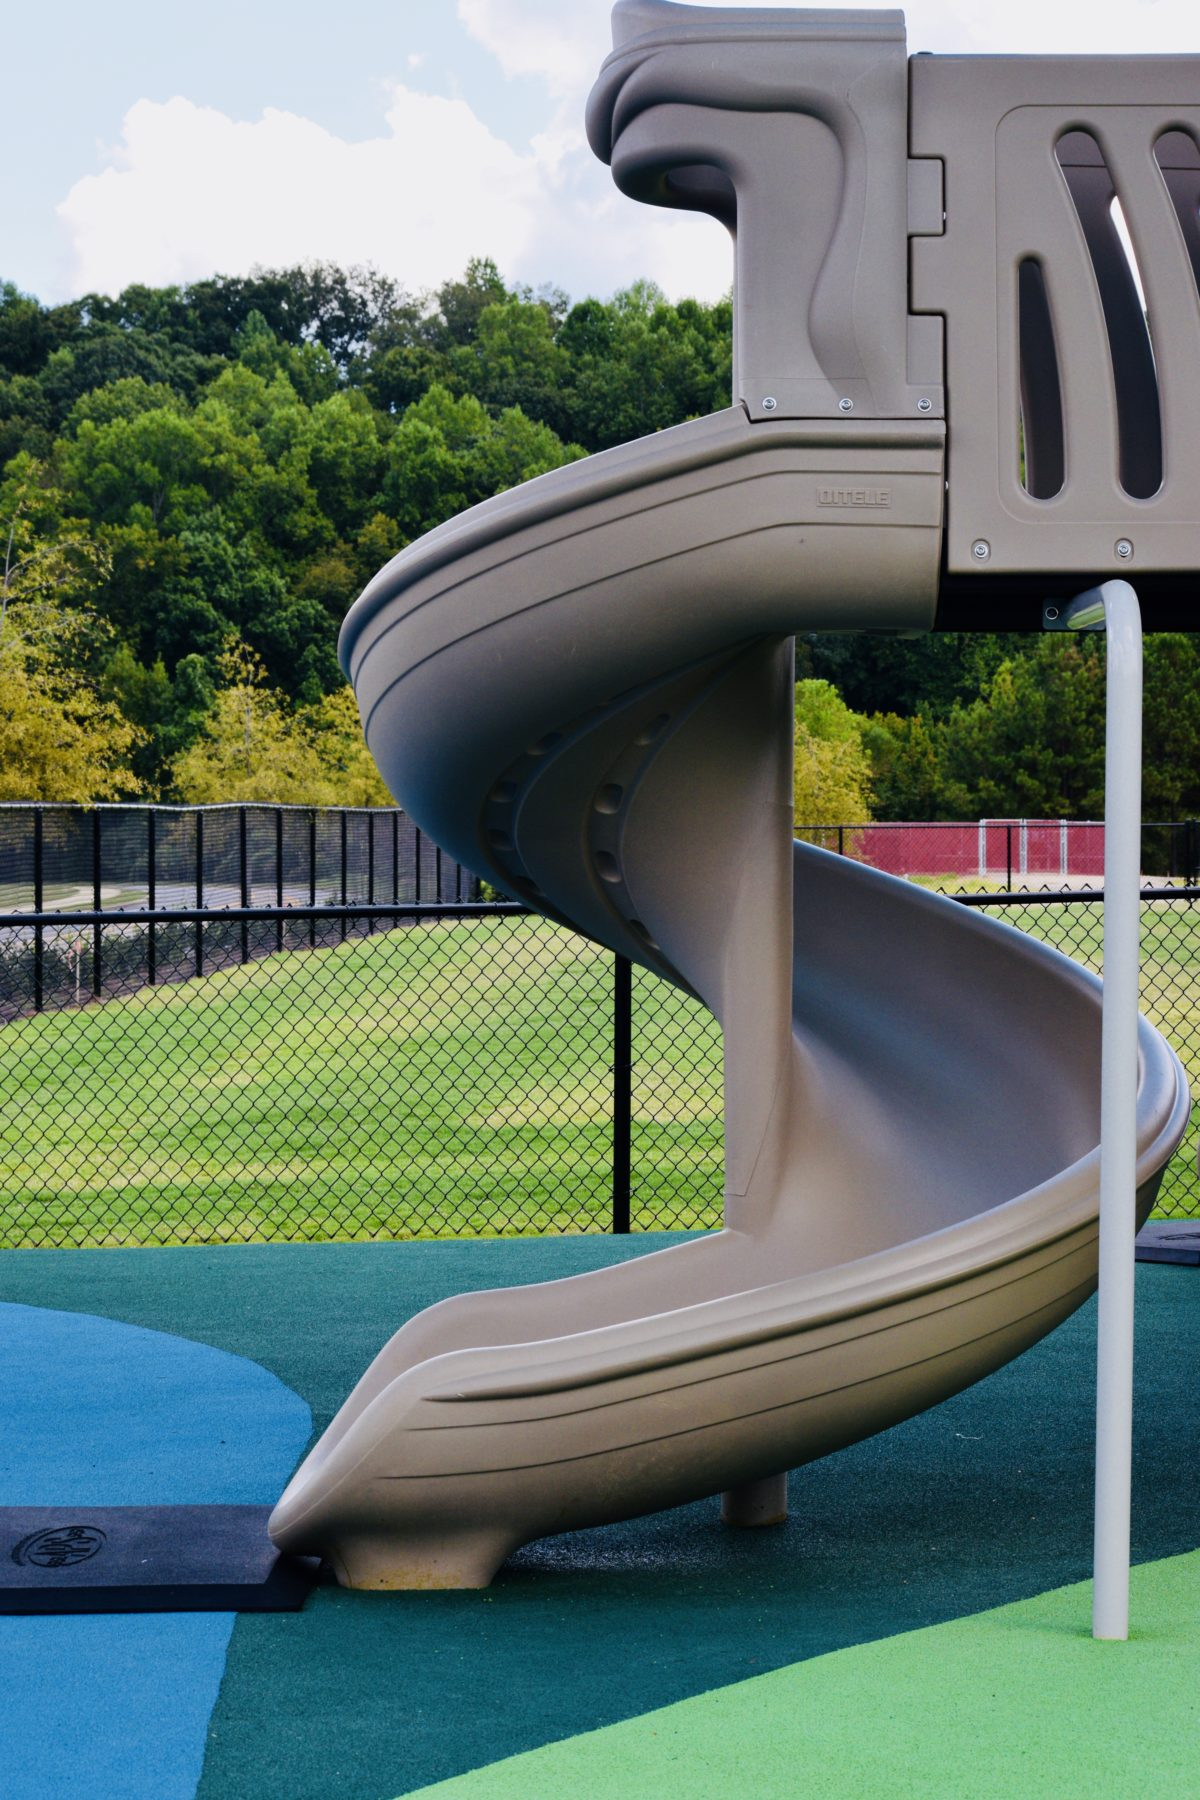 birmingham alabama daycare playground with shades and poured in place rubber safety surfacing 59